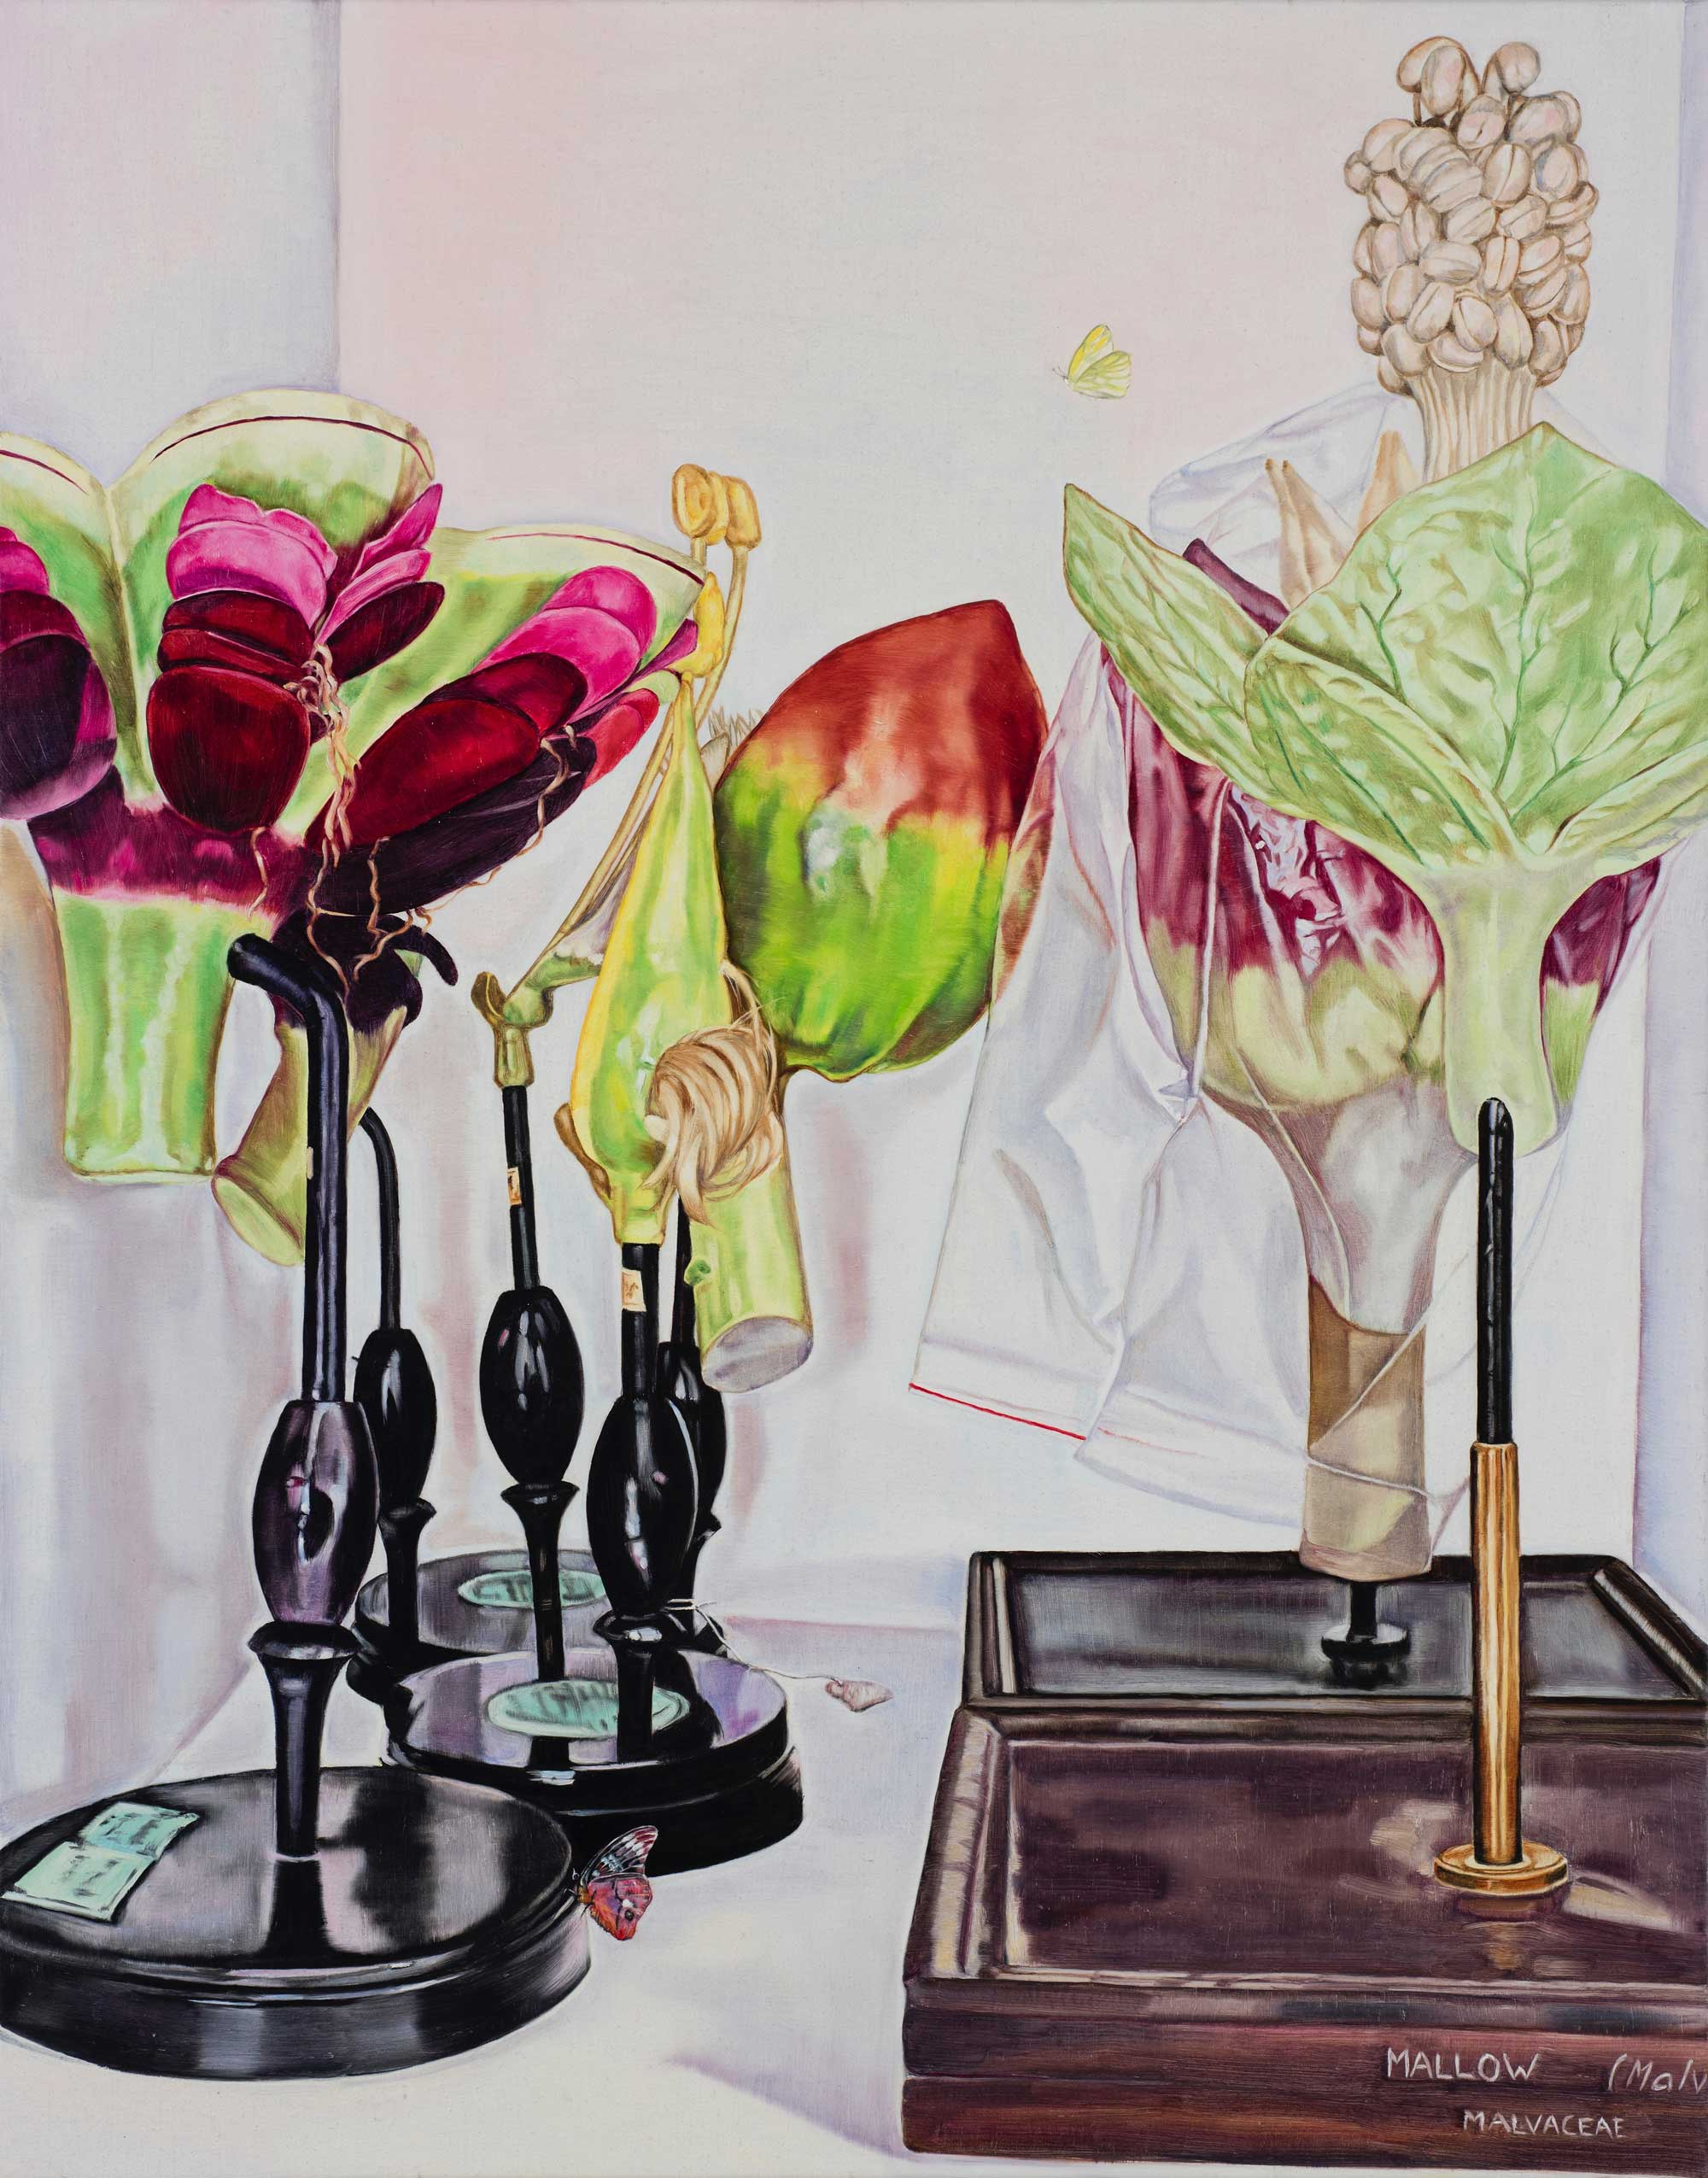 Still life with Mallow and butterfly , 2018 84 x 66cm oil on linen